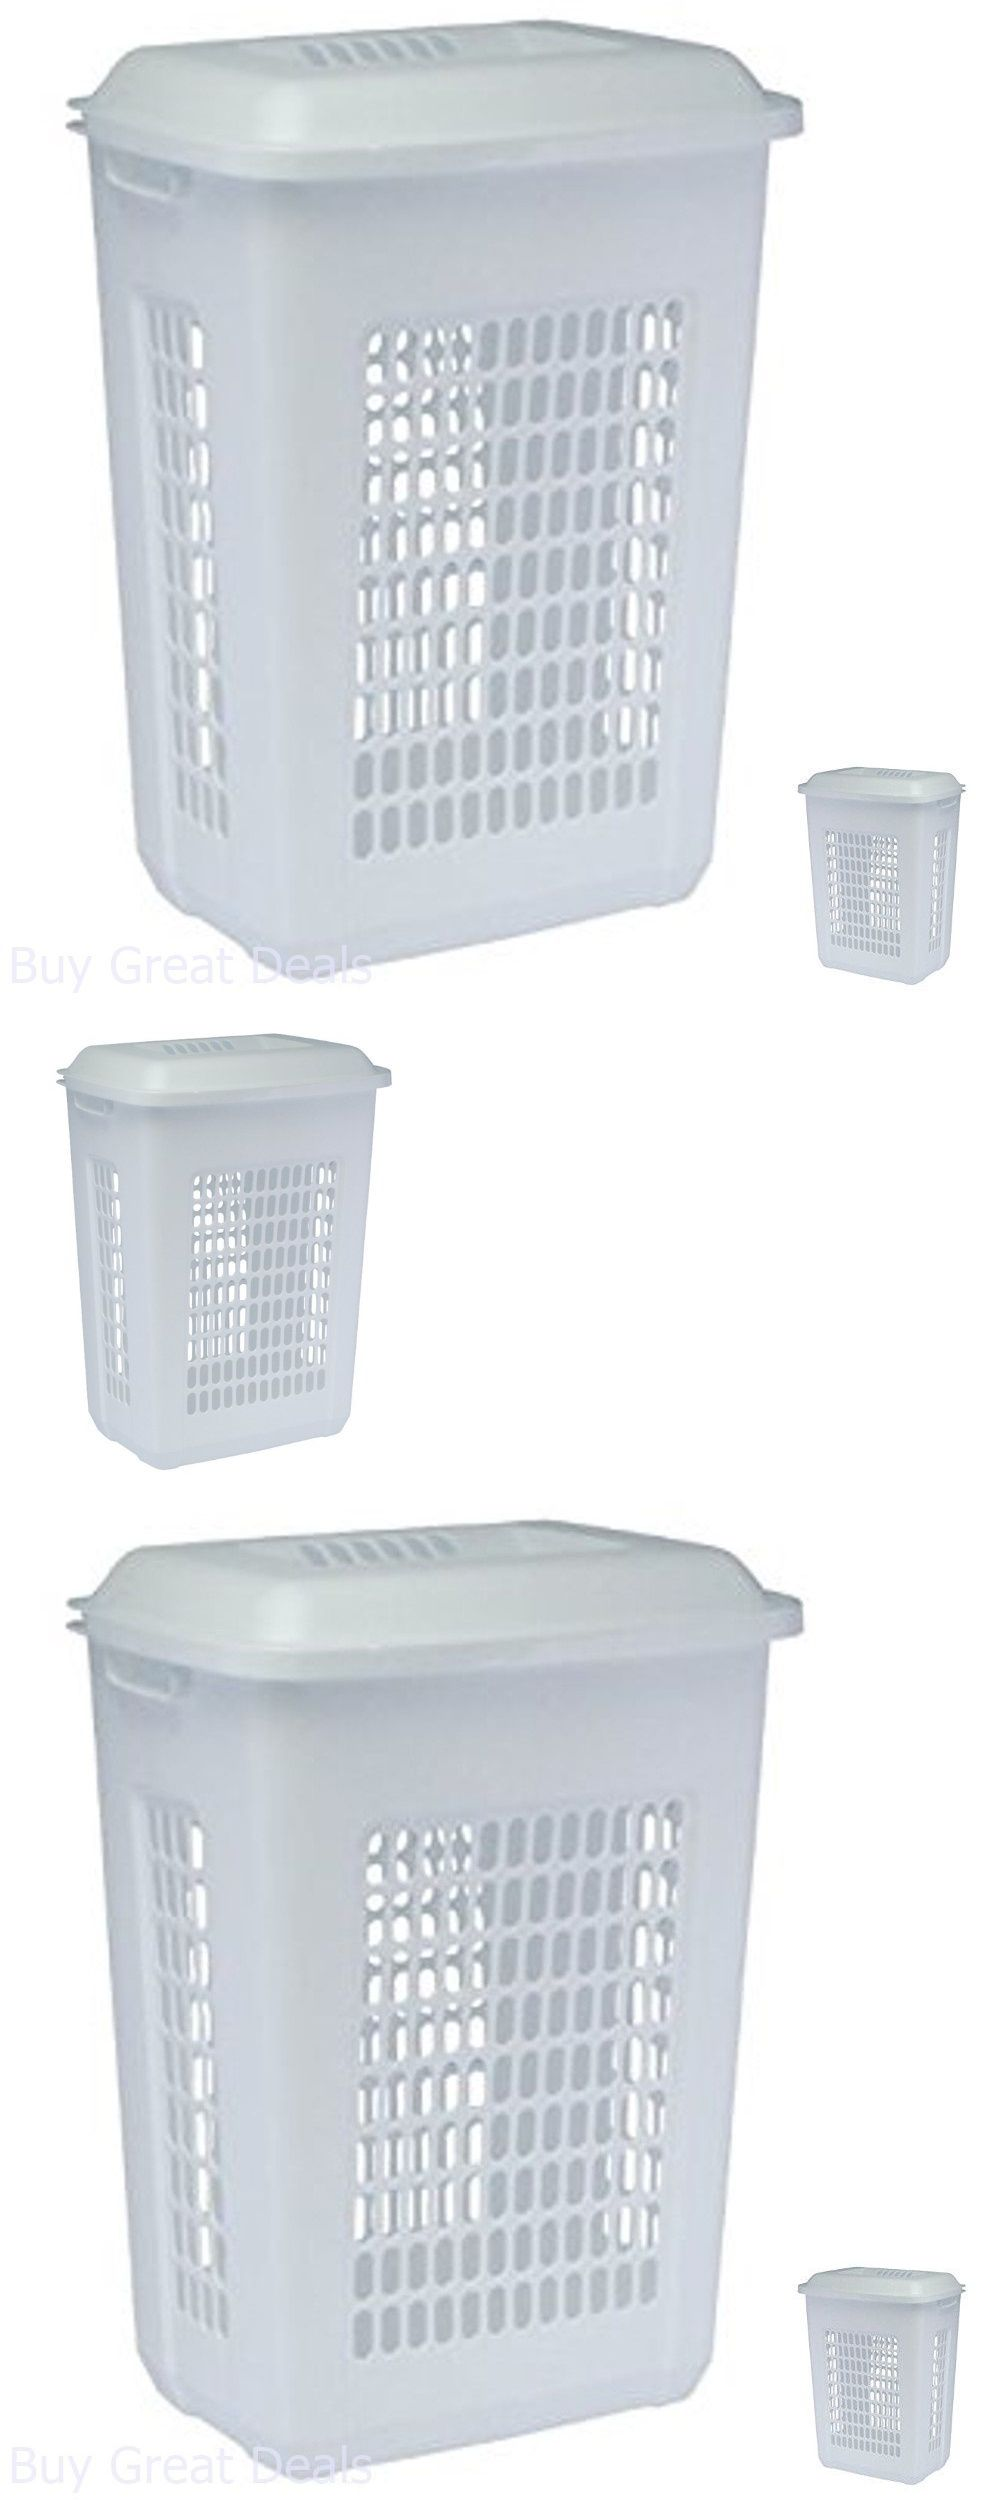 White tilt out clothes storage basket bin bathroom drawer ebay - Hampers 43517 Plastic Clothes Hamper Laundry Basket Lid White Bin Washing Storage Organizer